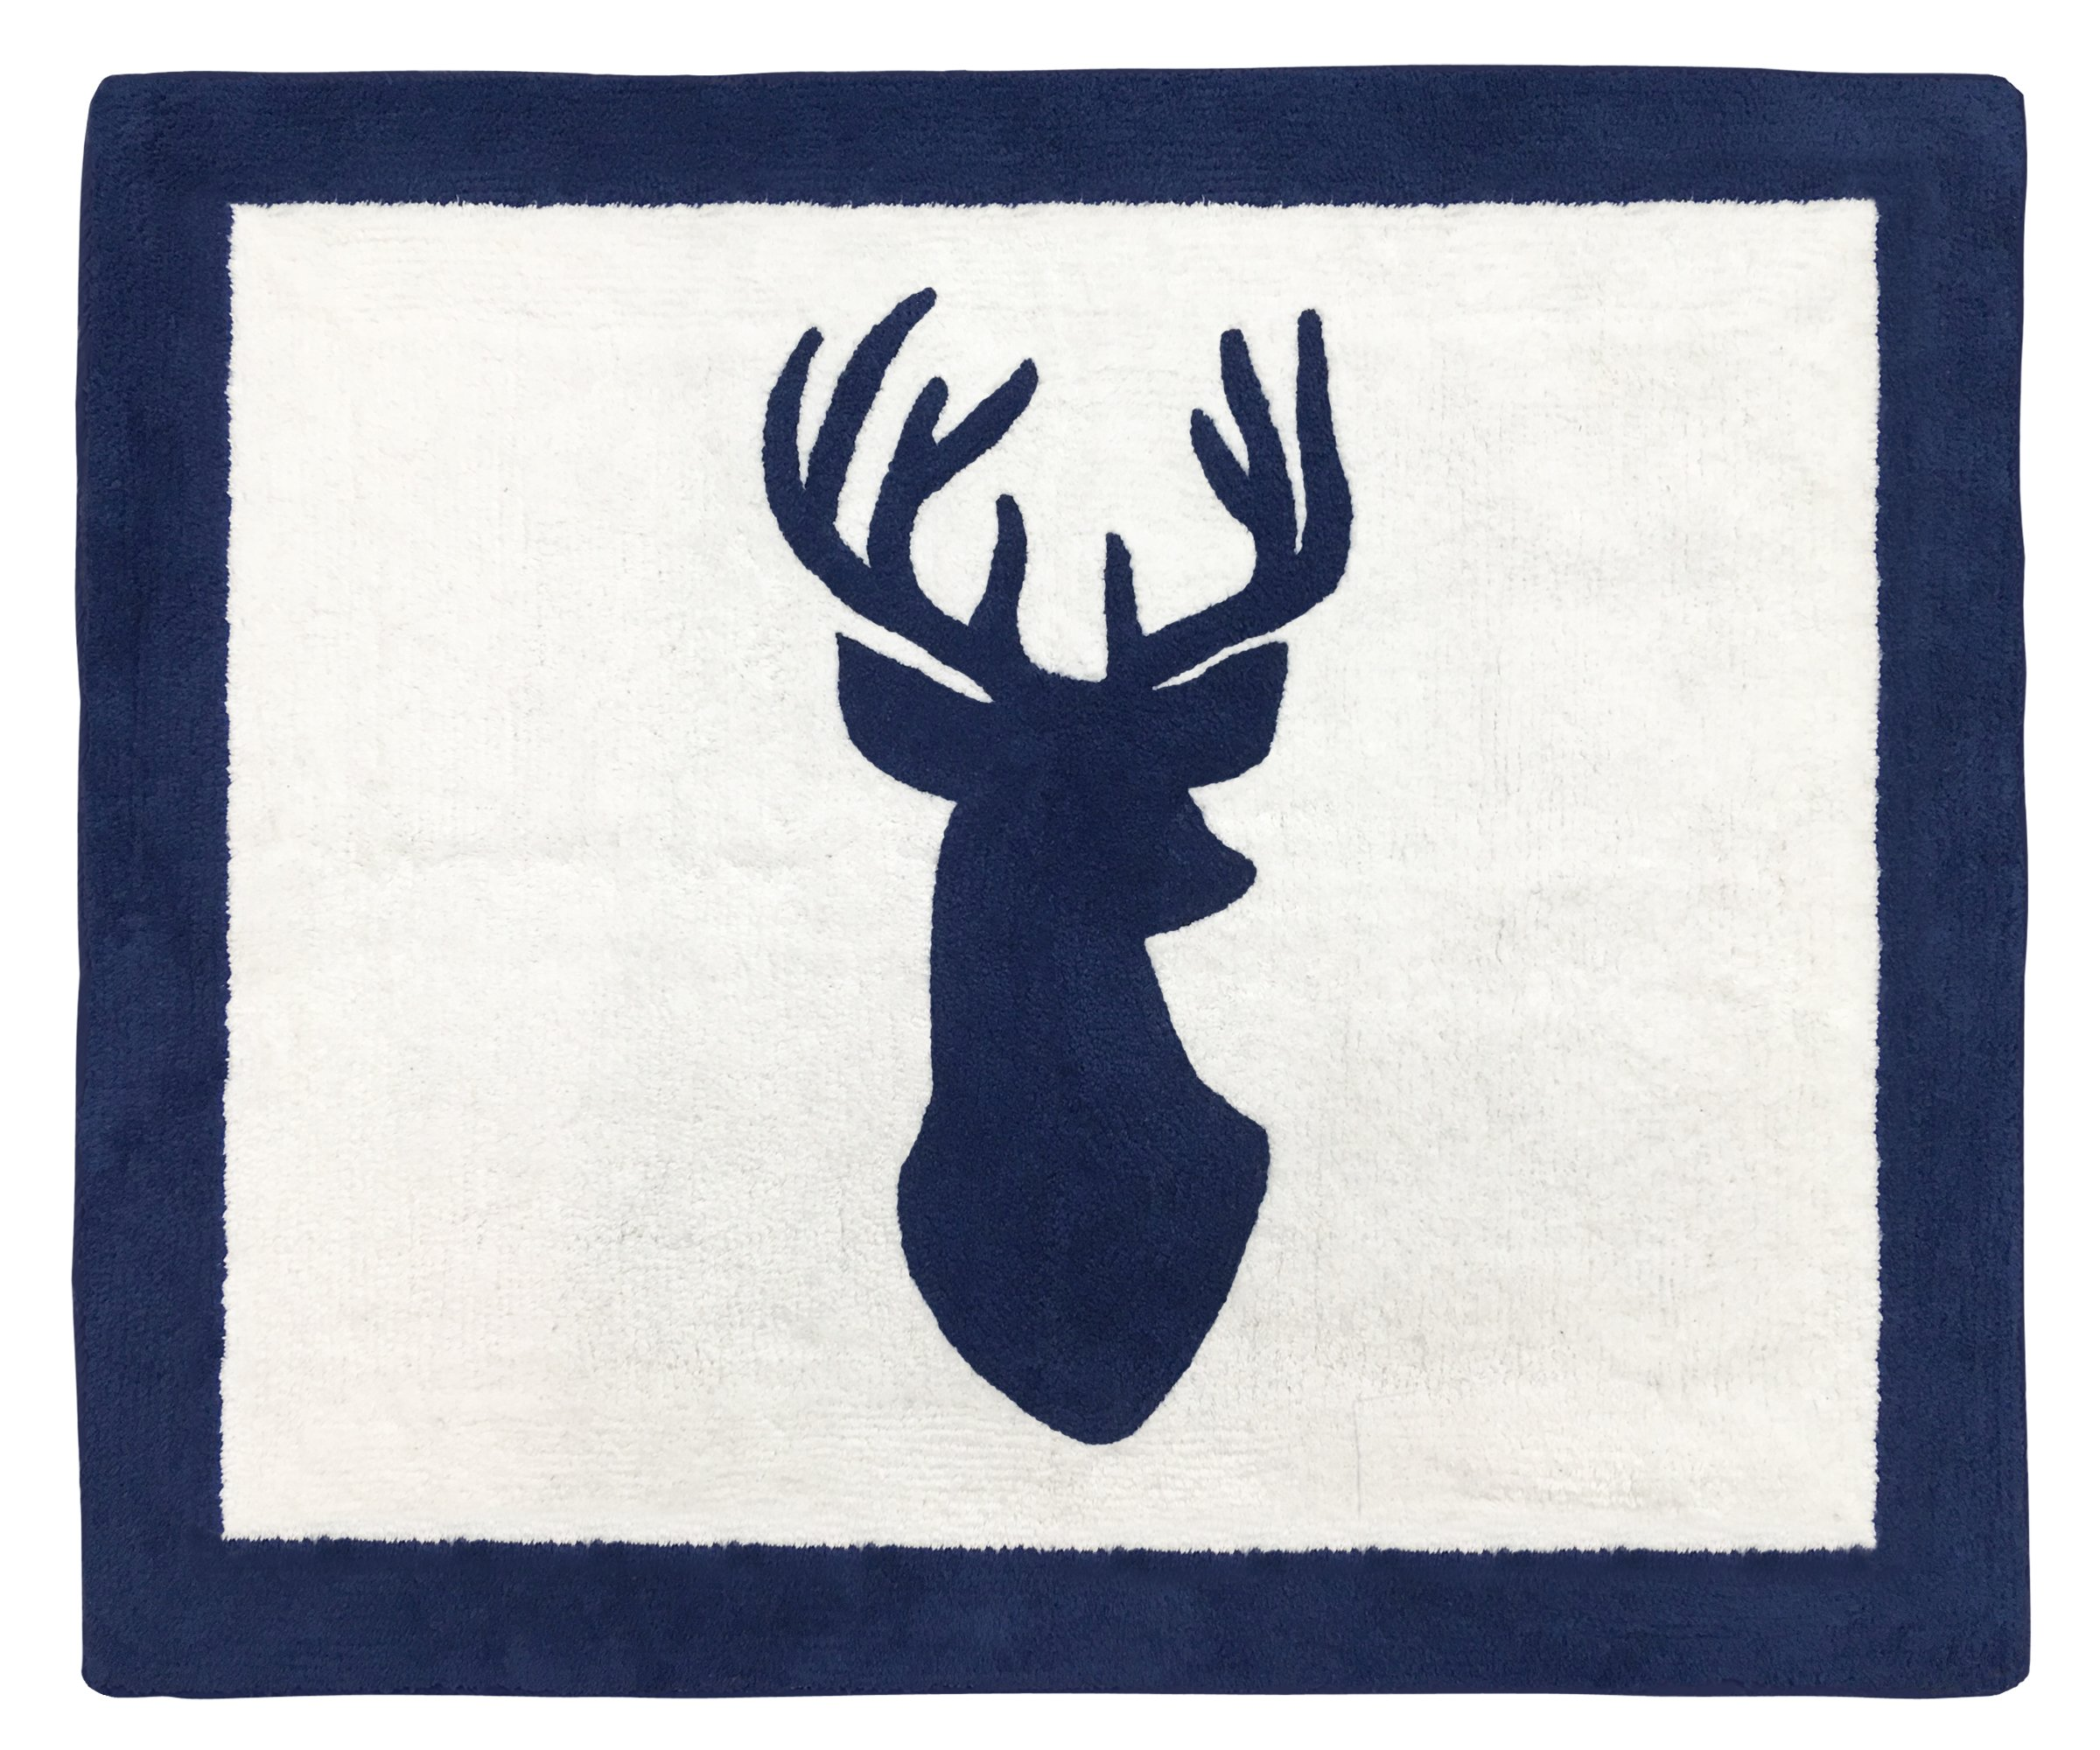 Sweet Jojo Designs Boys Accent Floor Rug Bedroom Decor for Navy and White Woodland Deer Kids Bedding Collection by Sweet Jojo Designs